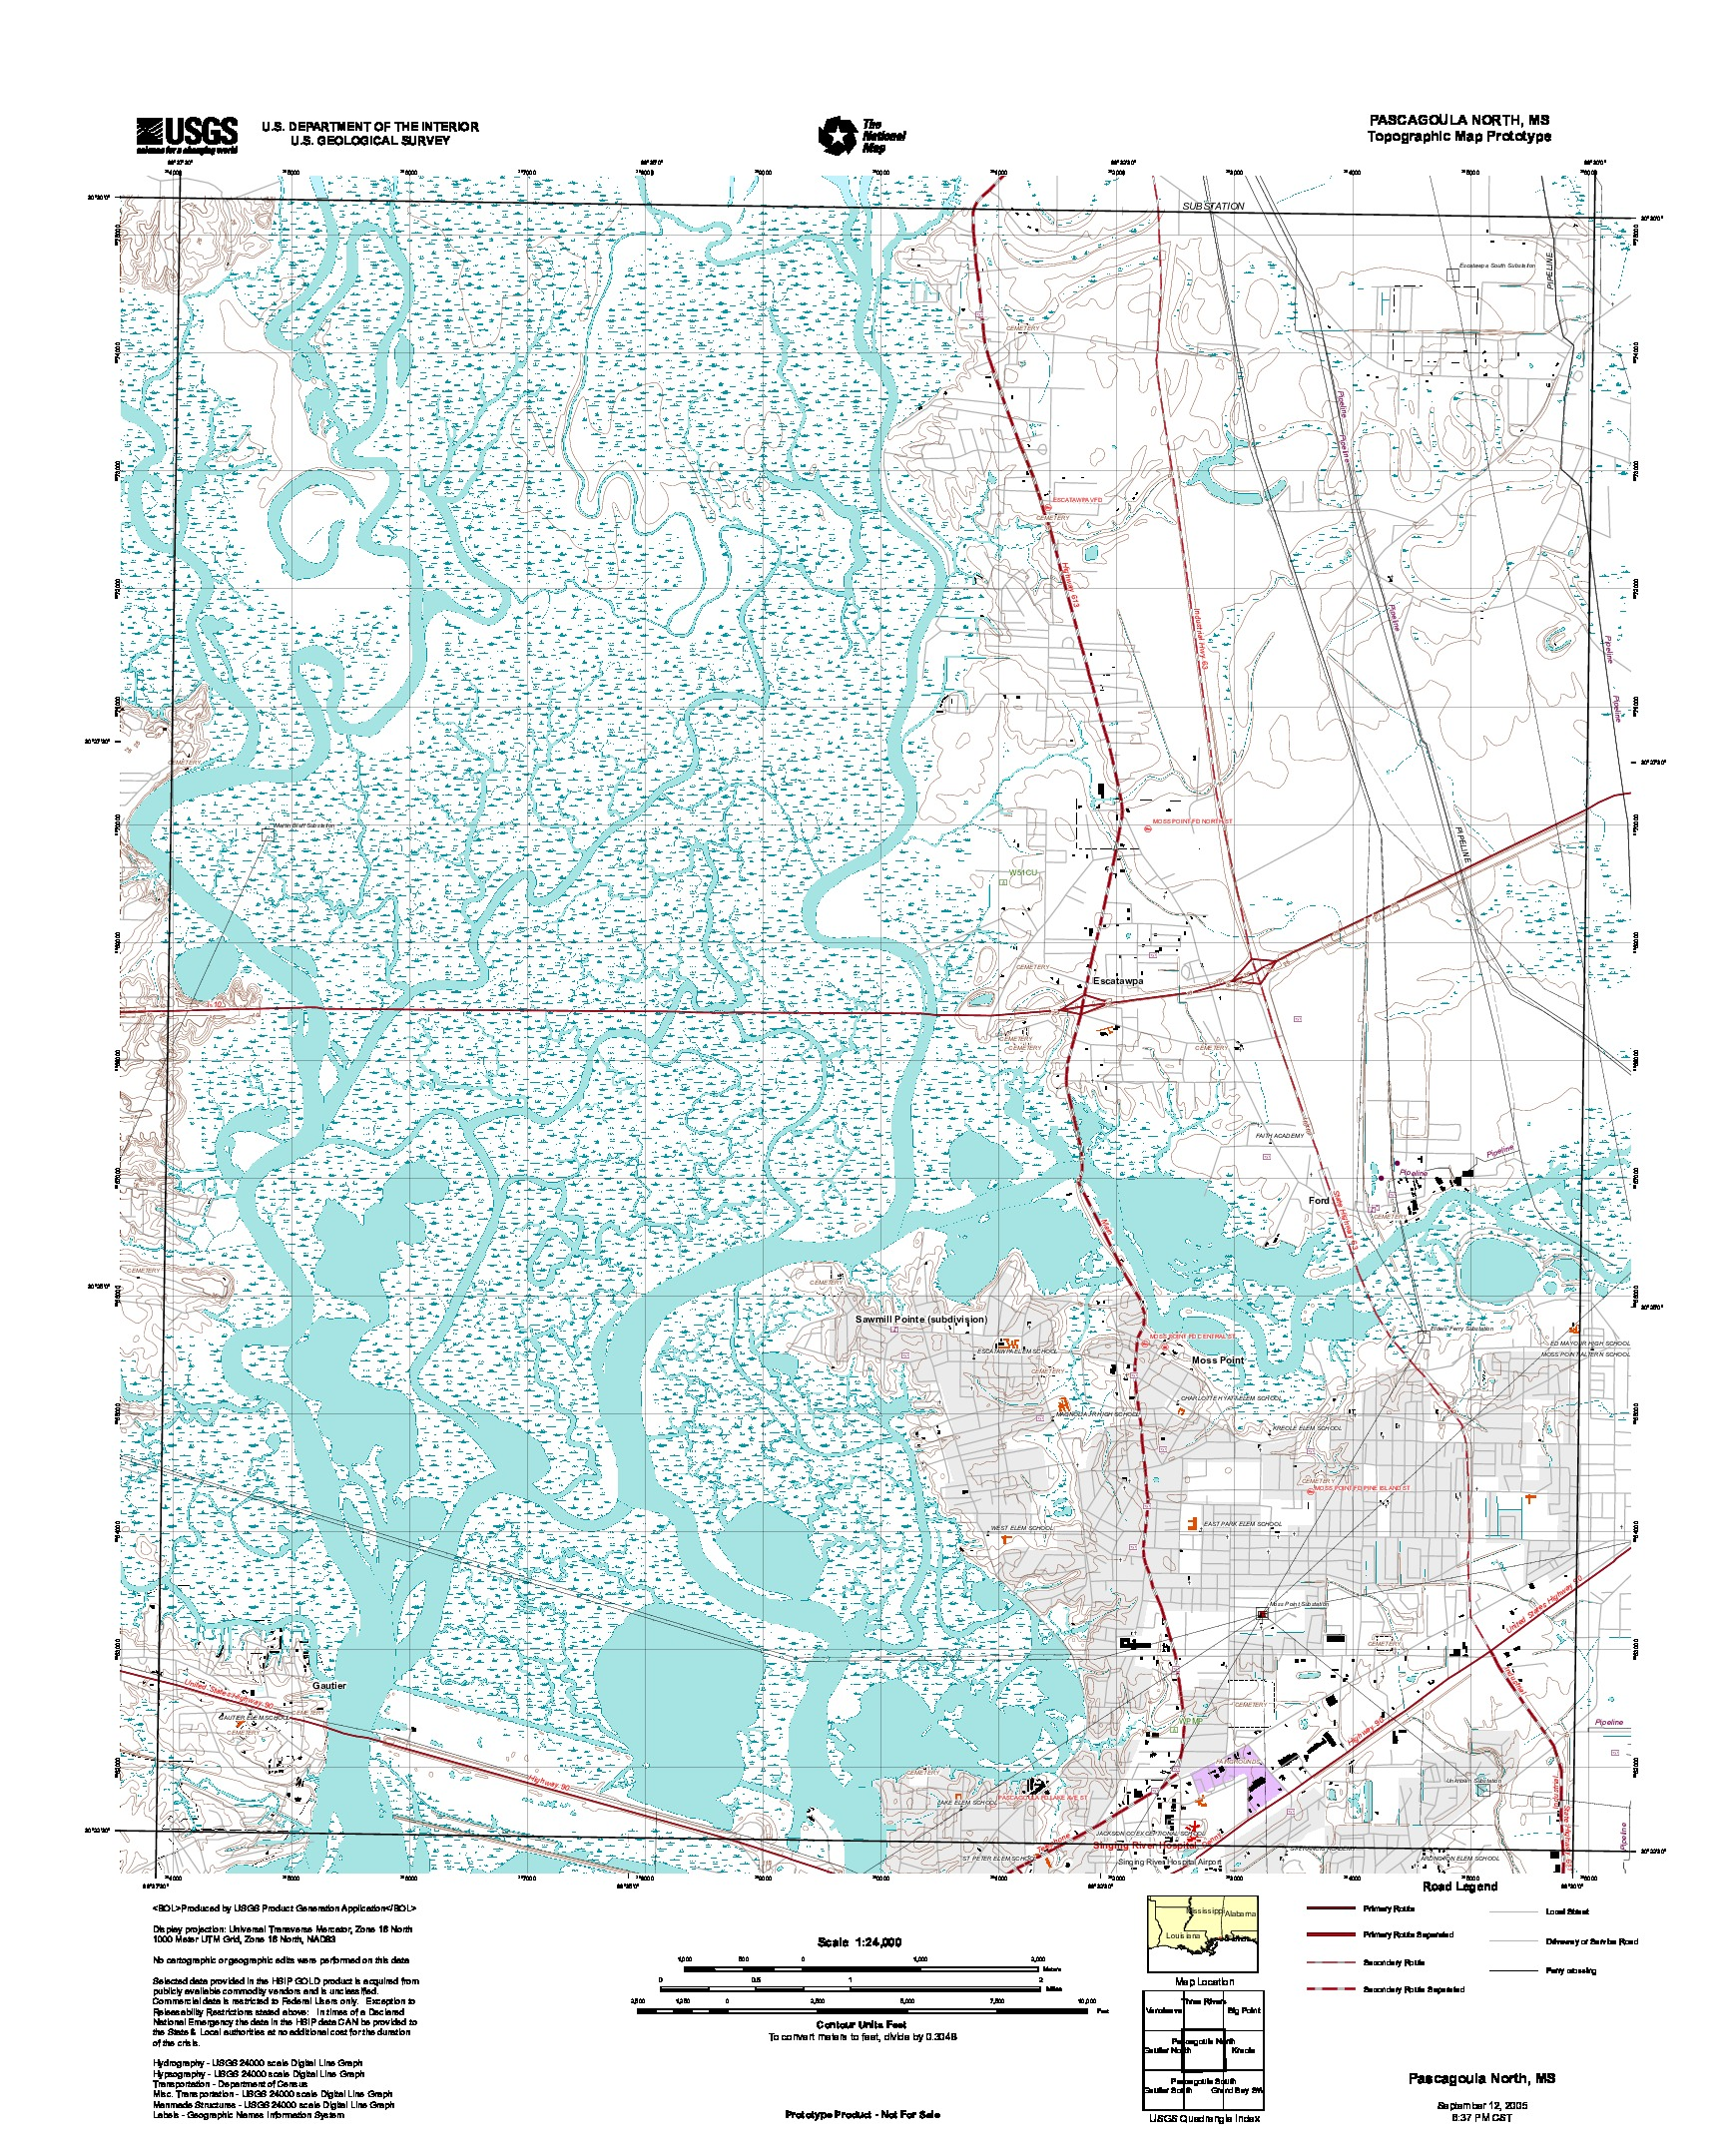 Pascagoula North, Topographic Map Prototype, Mississippi, United States, September 12, 2005